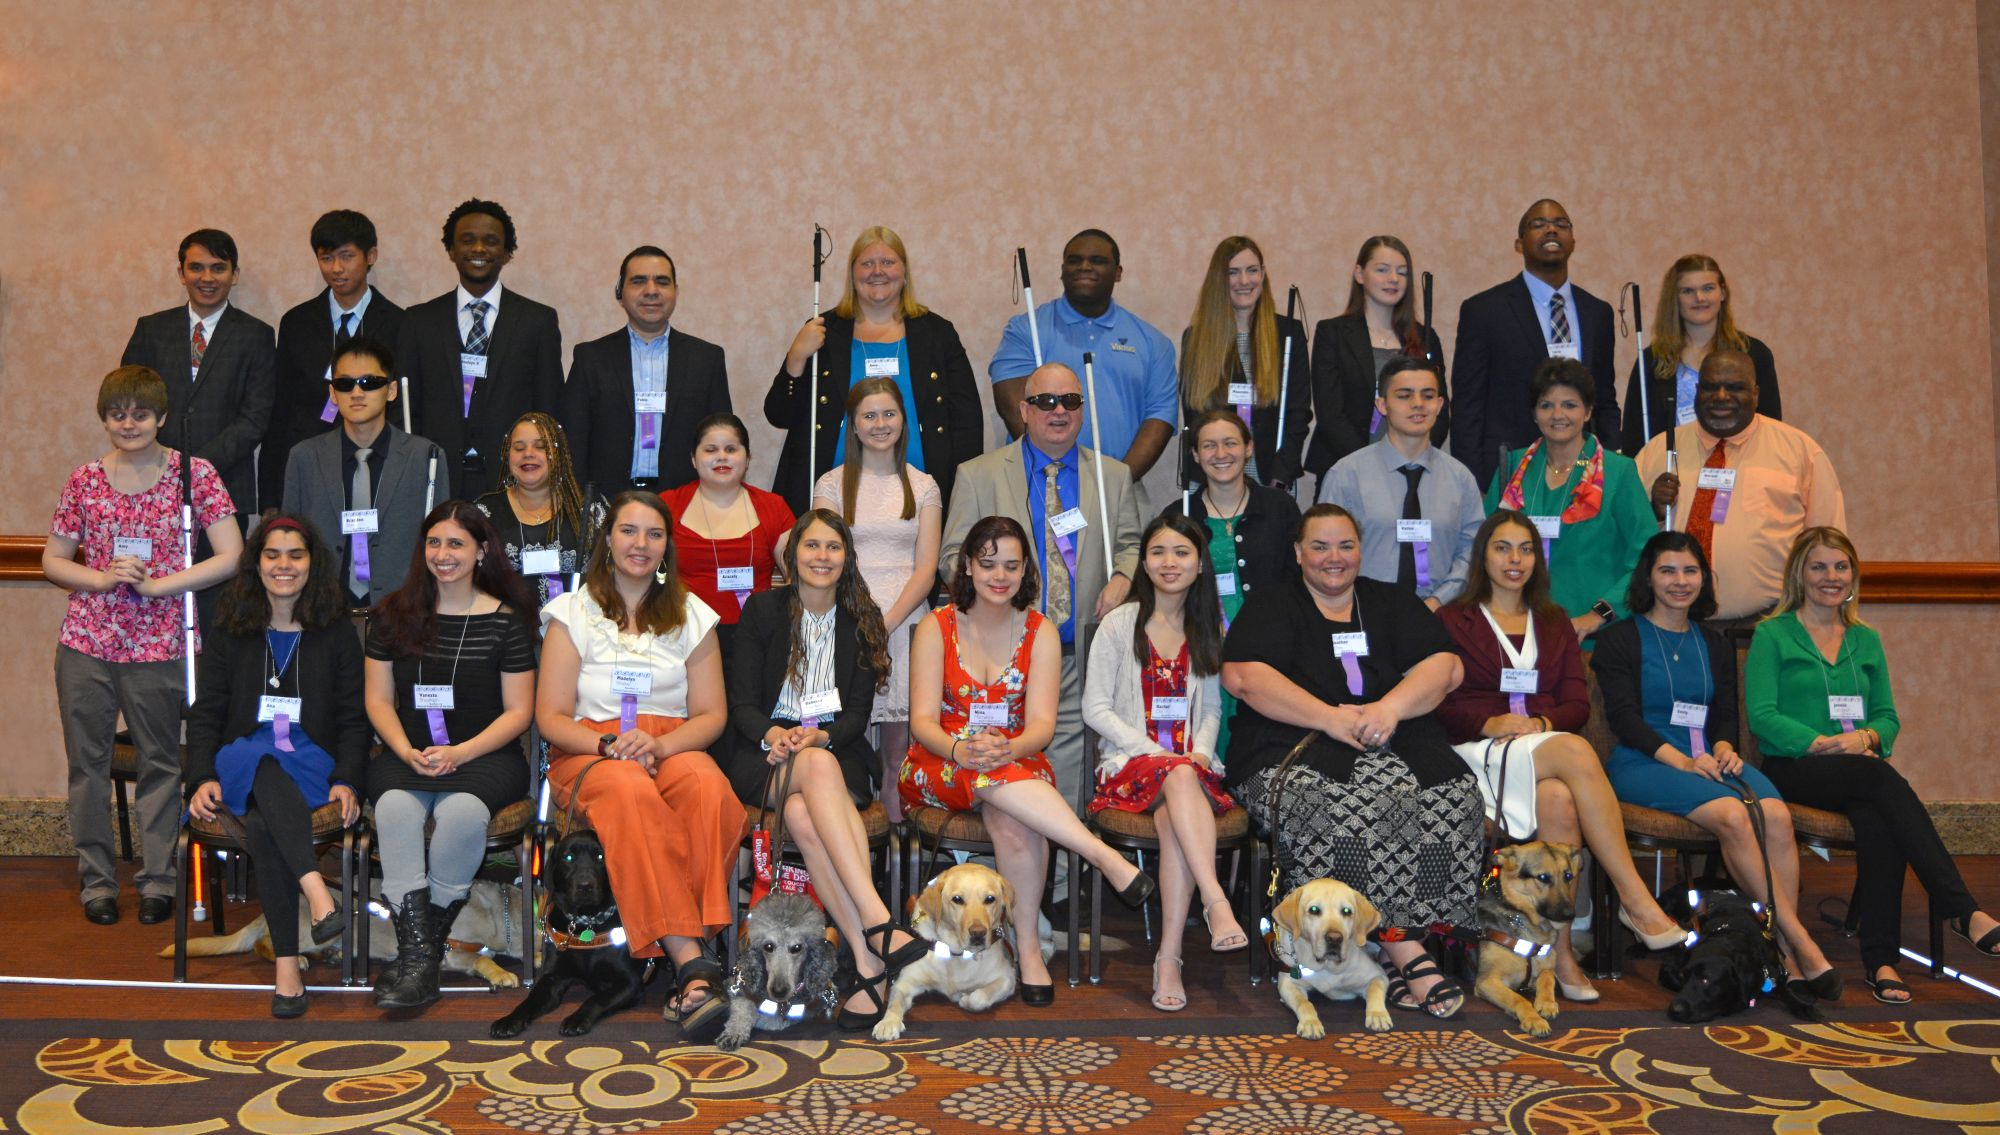 2019 scholarship winners sit for a group photo at the NFB National Convention in Las Vegas.